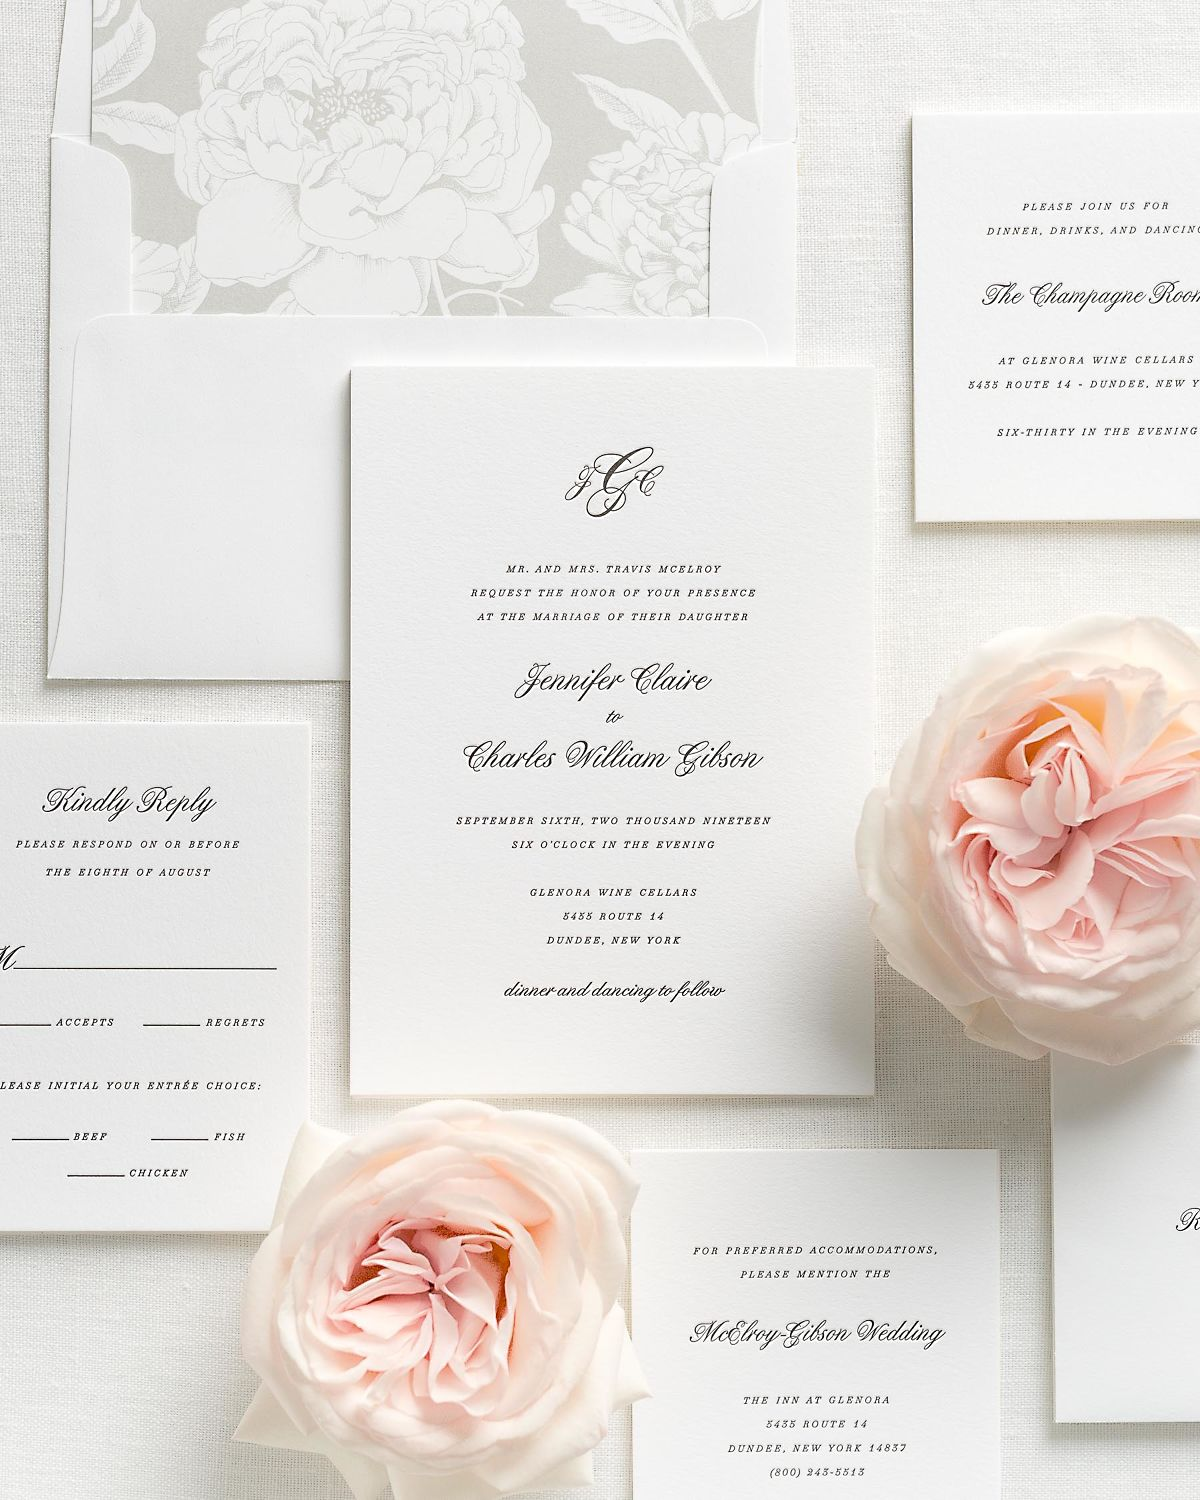 Letterpress Wedding Invitations with Stone Blooms Envelope Liner and Matching Accessories